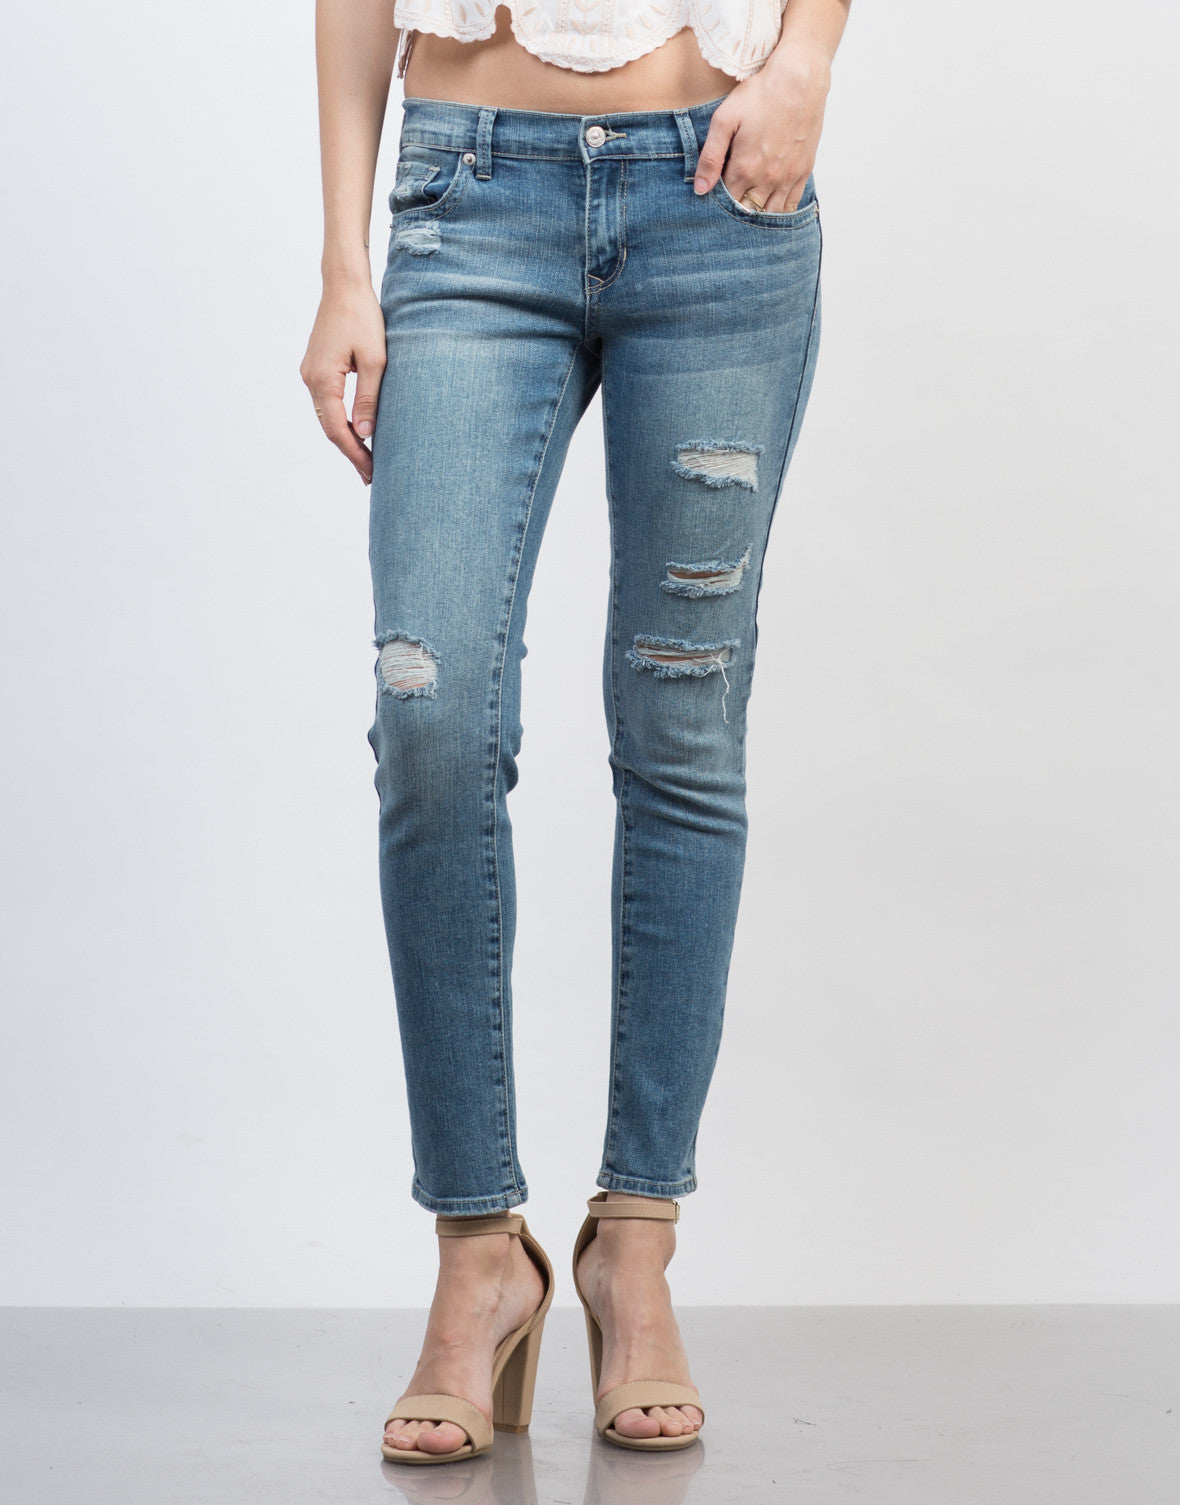 Front View of Destroyed Denim Jeans